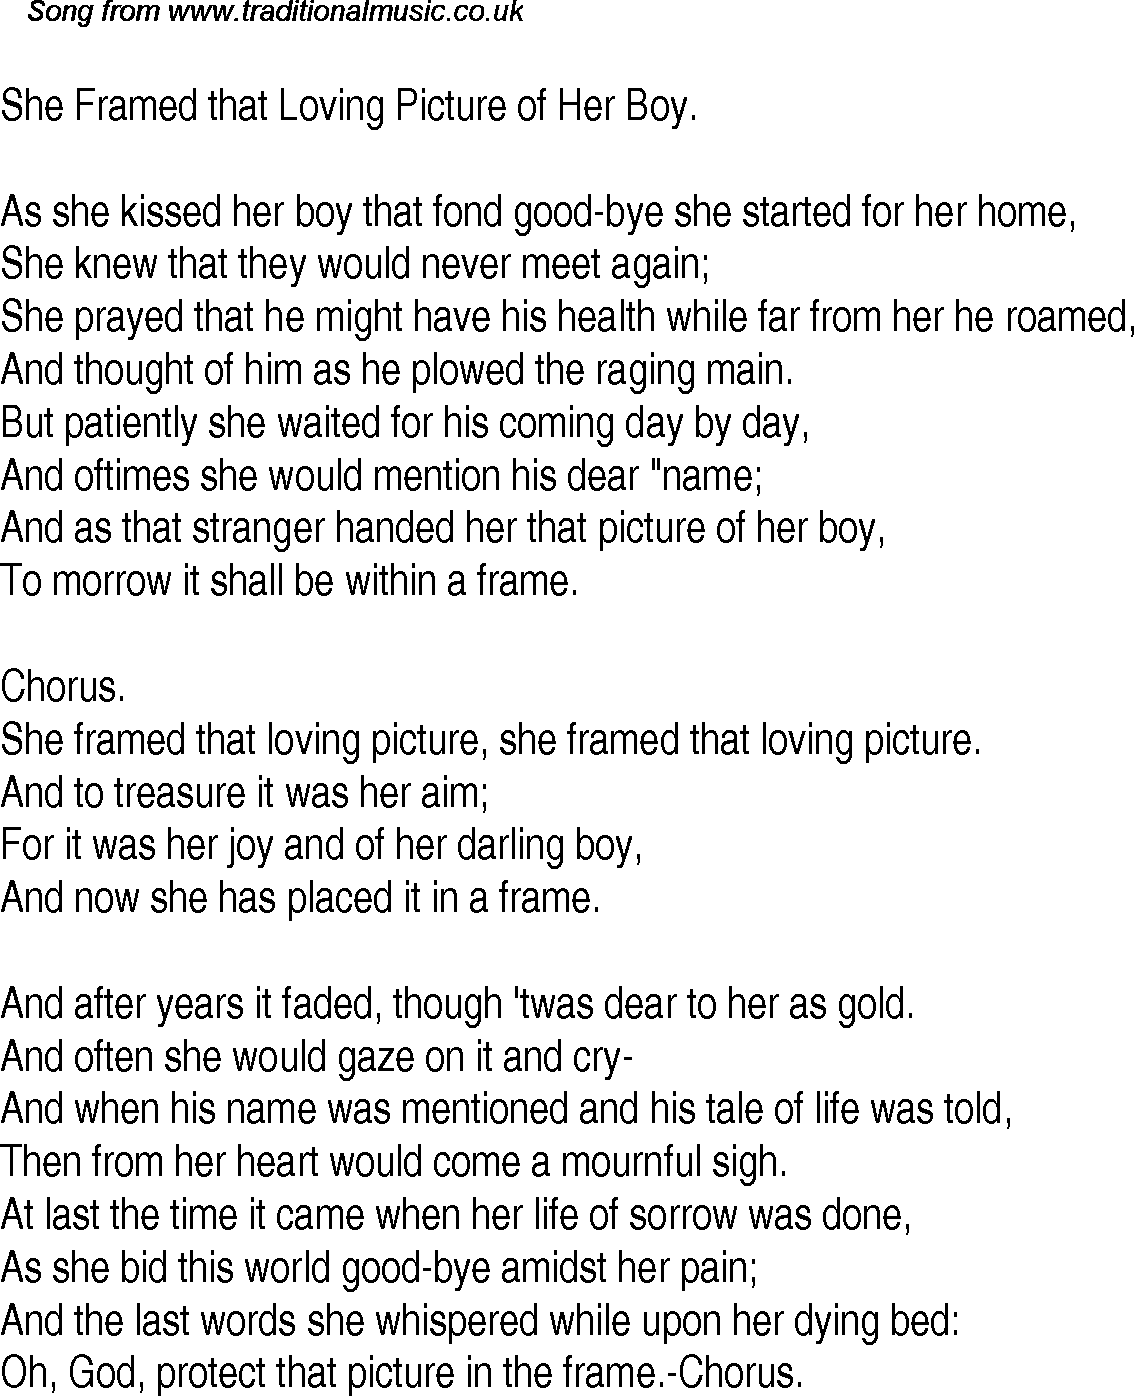 old time song lyrics for 26 she framed that loving picture of her boy